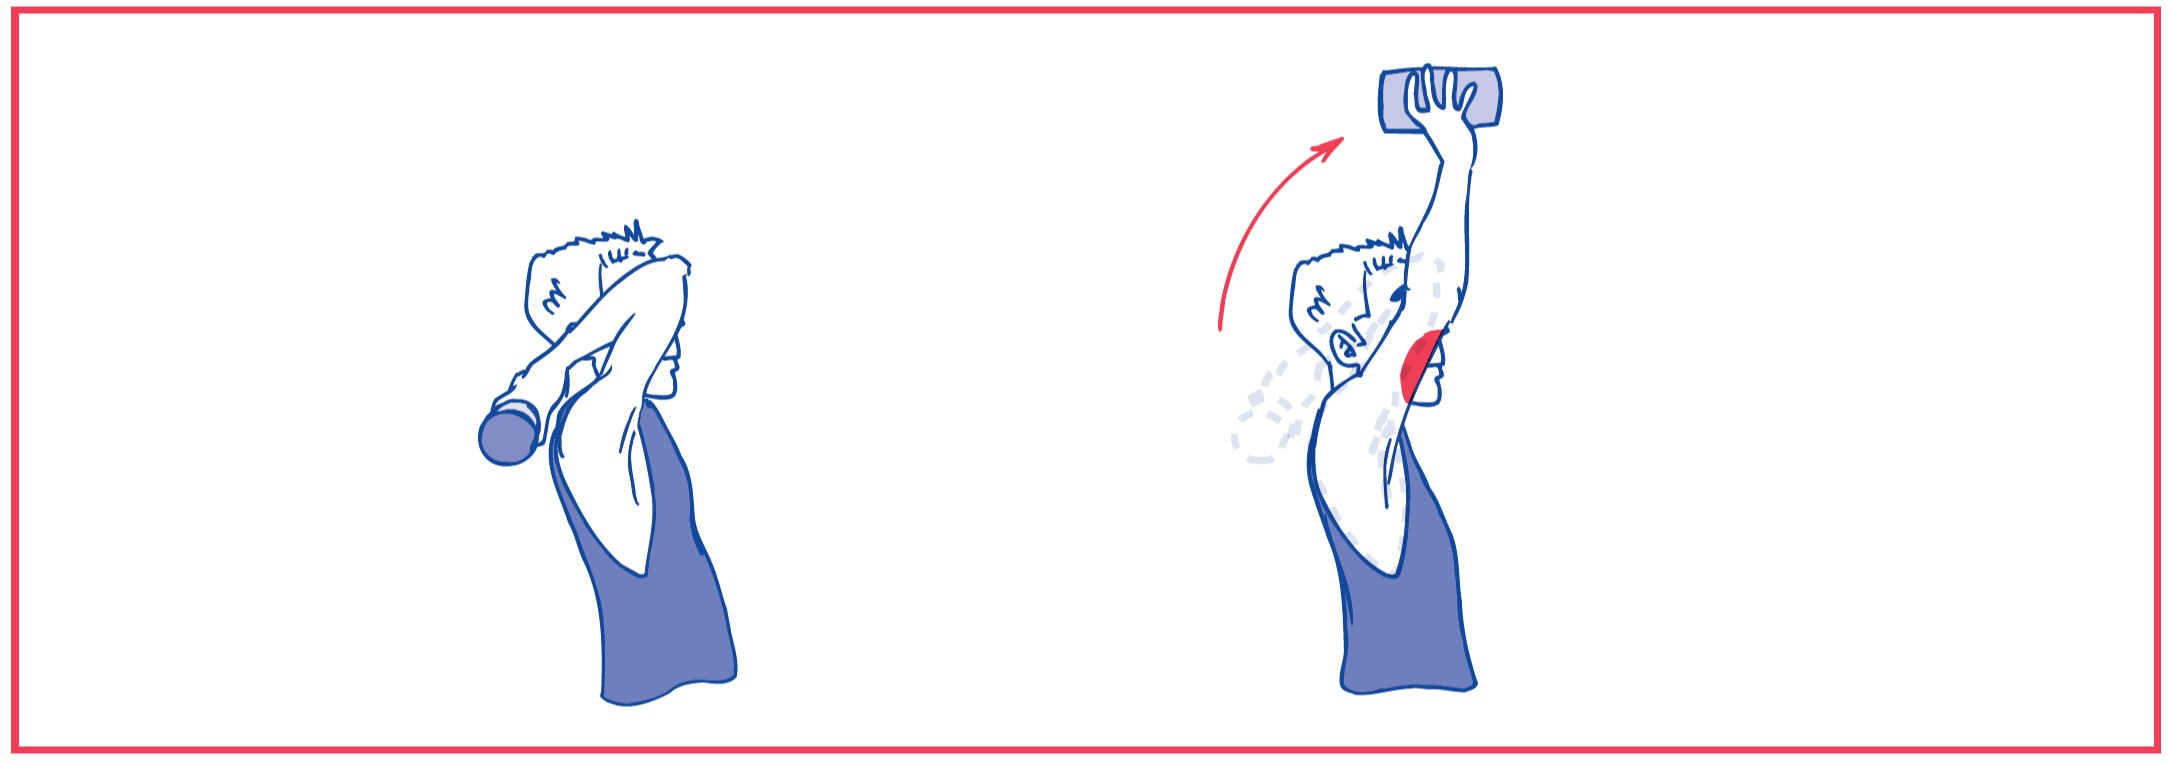 4. Elbow extension with resistance (weights)